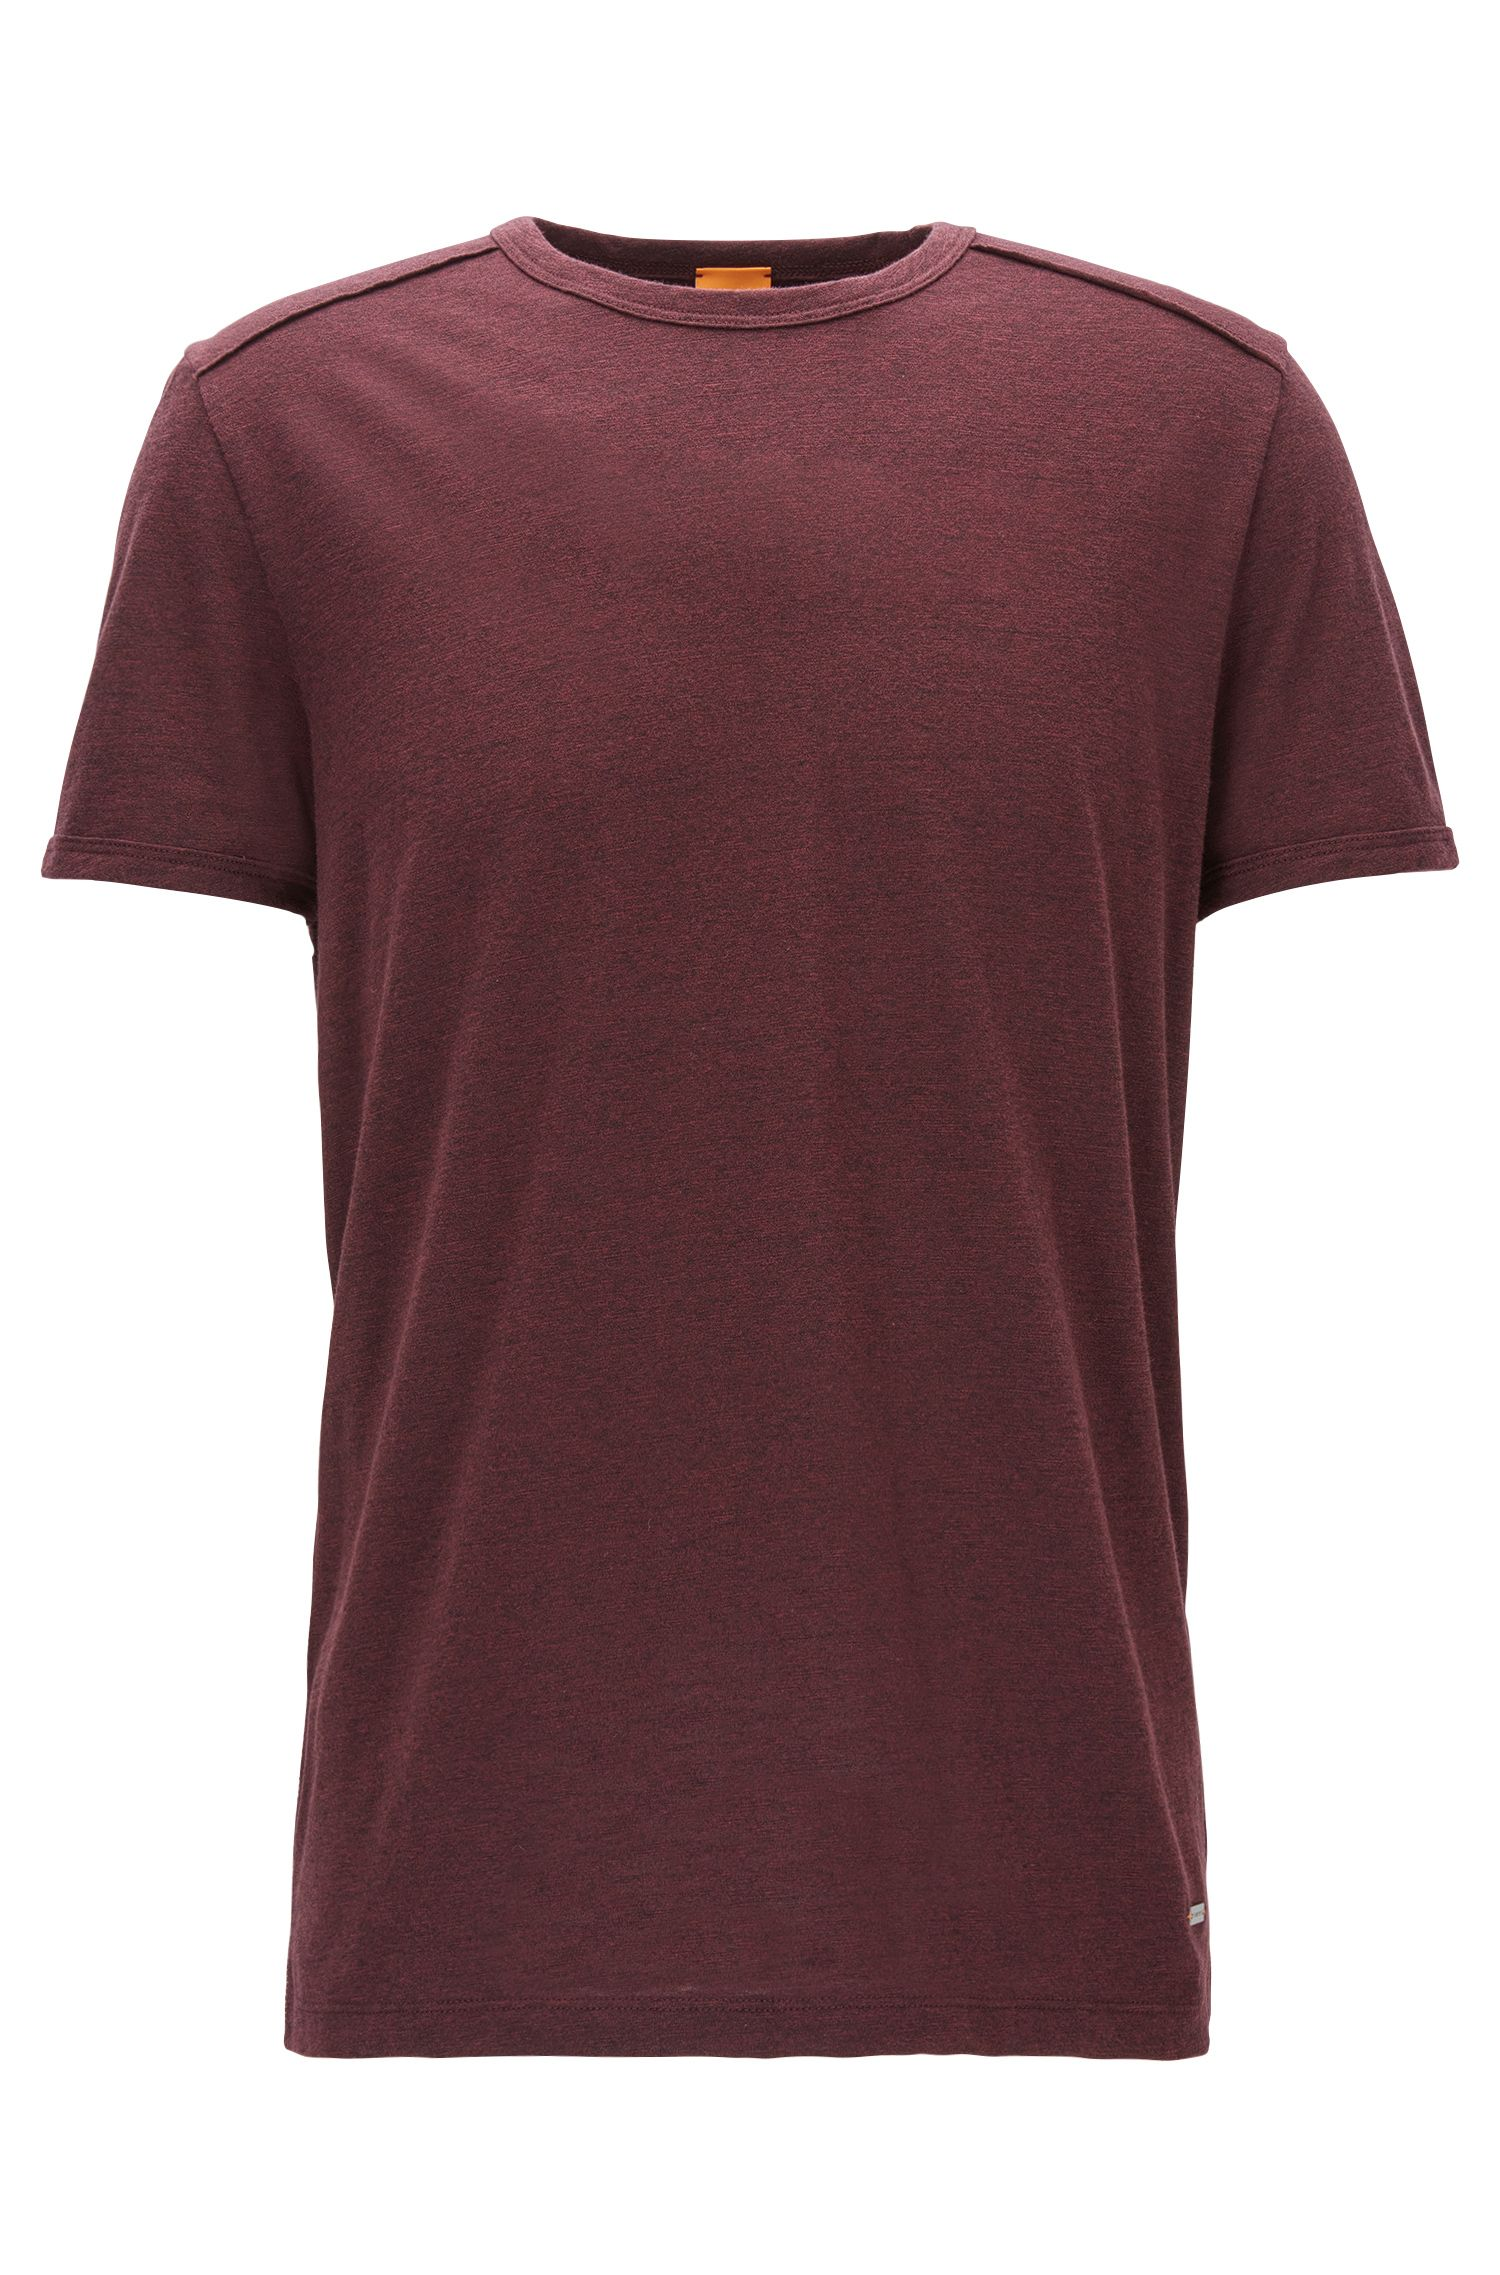 Meliertes Relaxed-Fit T-Shirt aus Baumwoll-Mix mit Modal